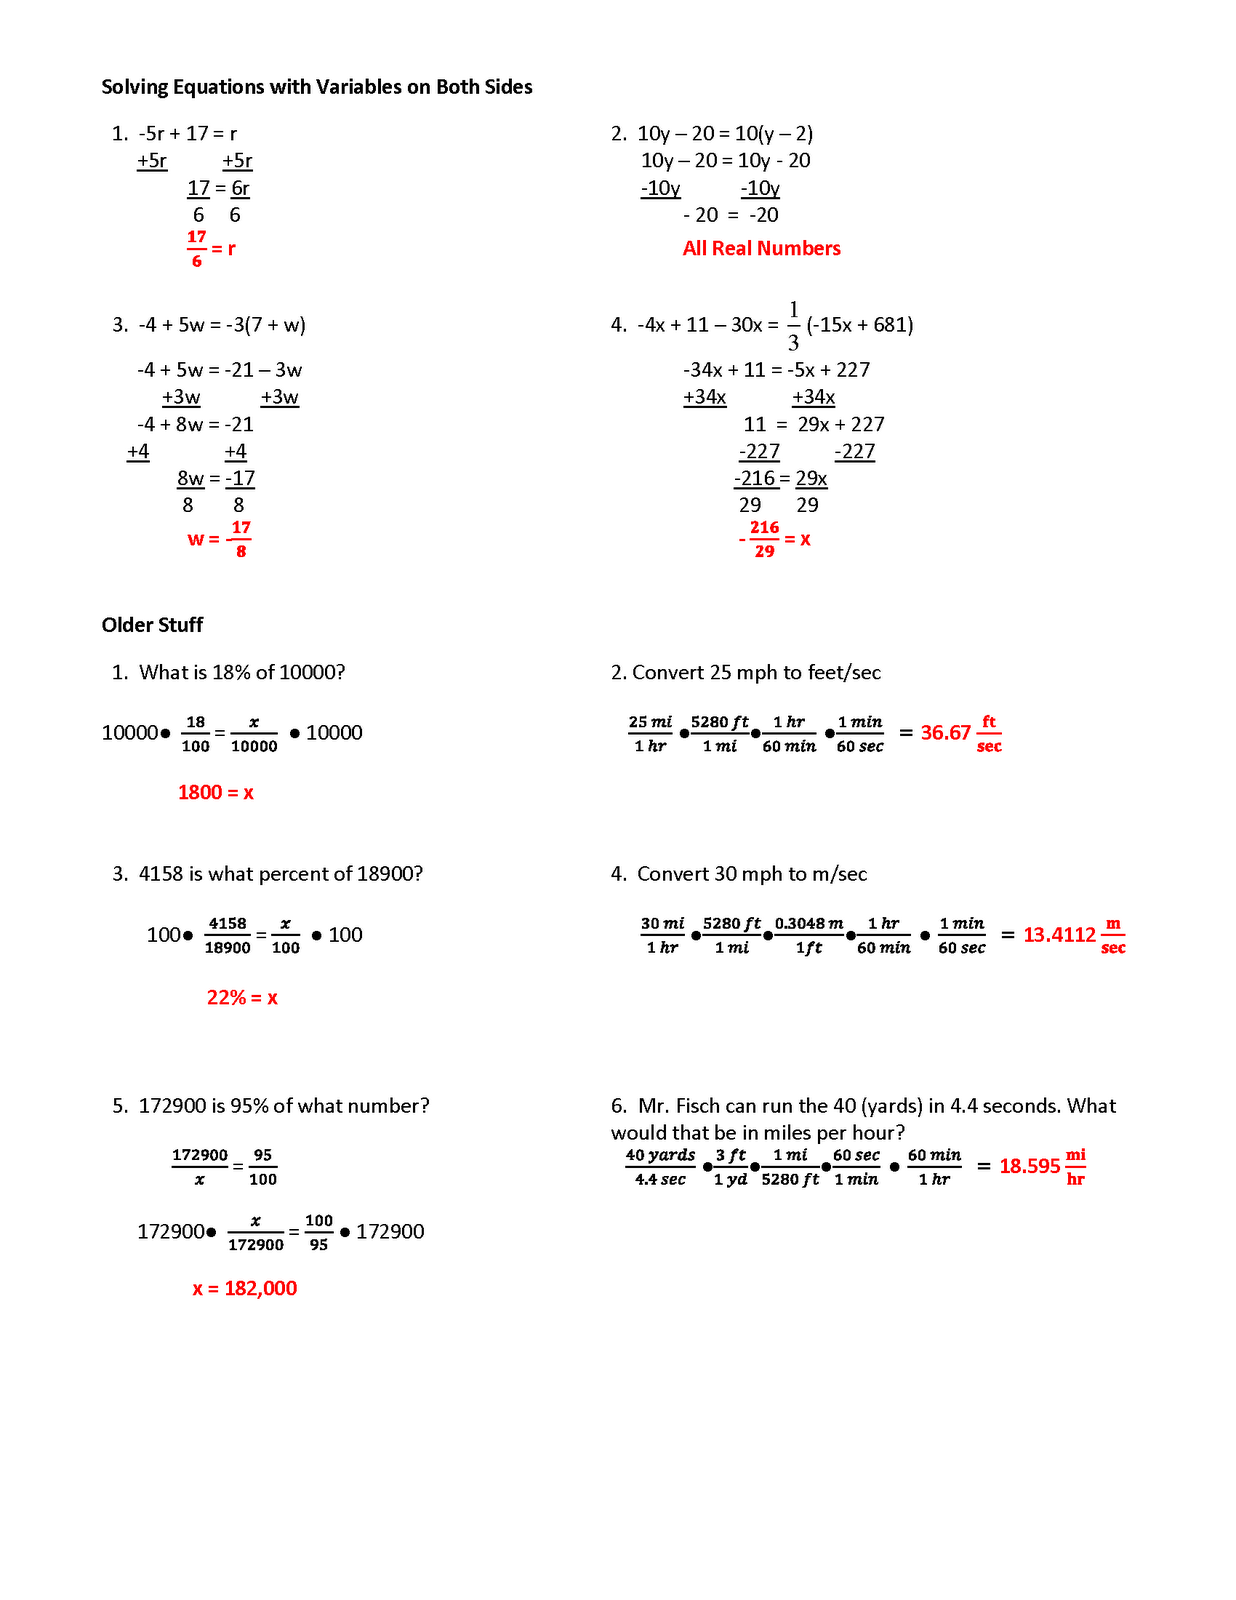 Uncategorized Graphing Using Intercepts Worksheet transparent algebra september 2011 was to finish the review worksheet if necessary and prepare for their assessment on monday over graphing linear equations by using intercepts